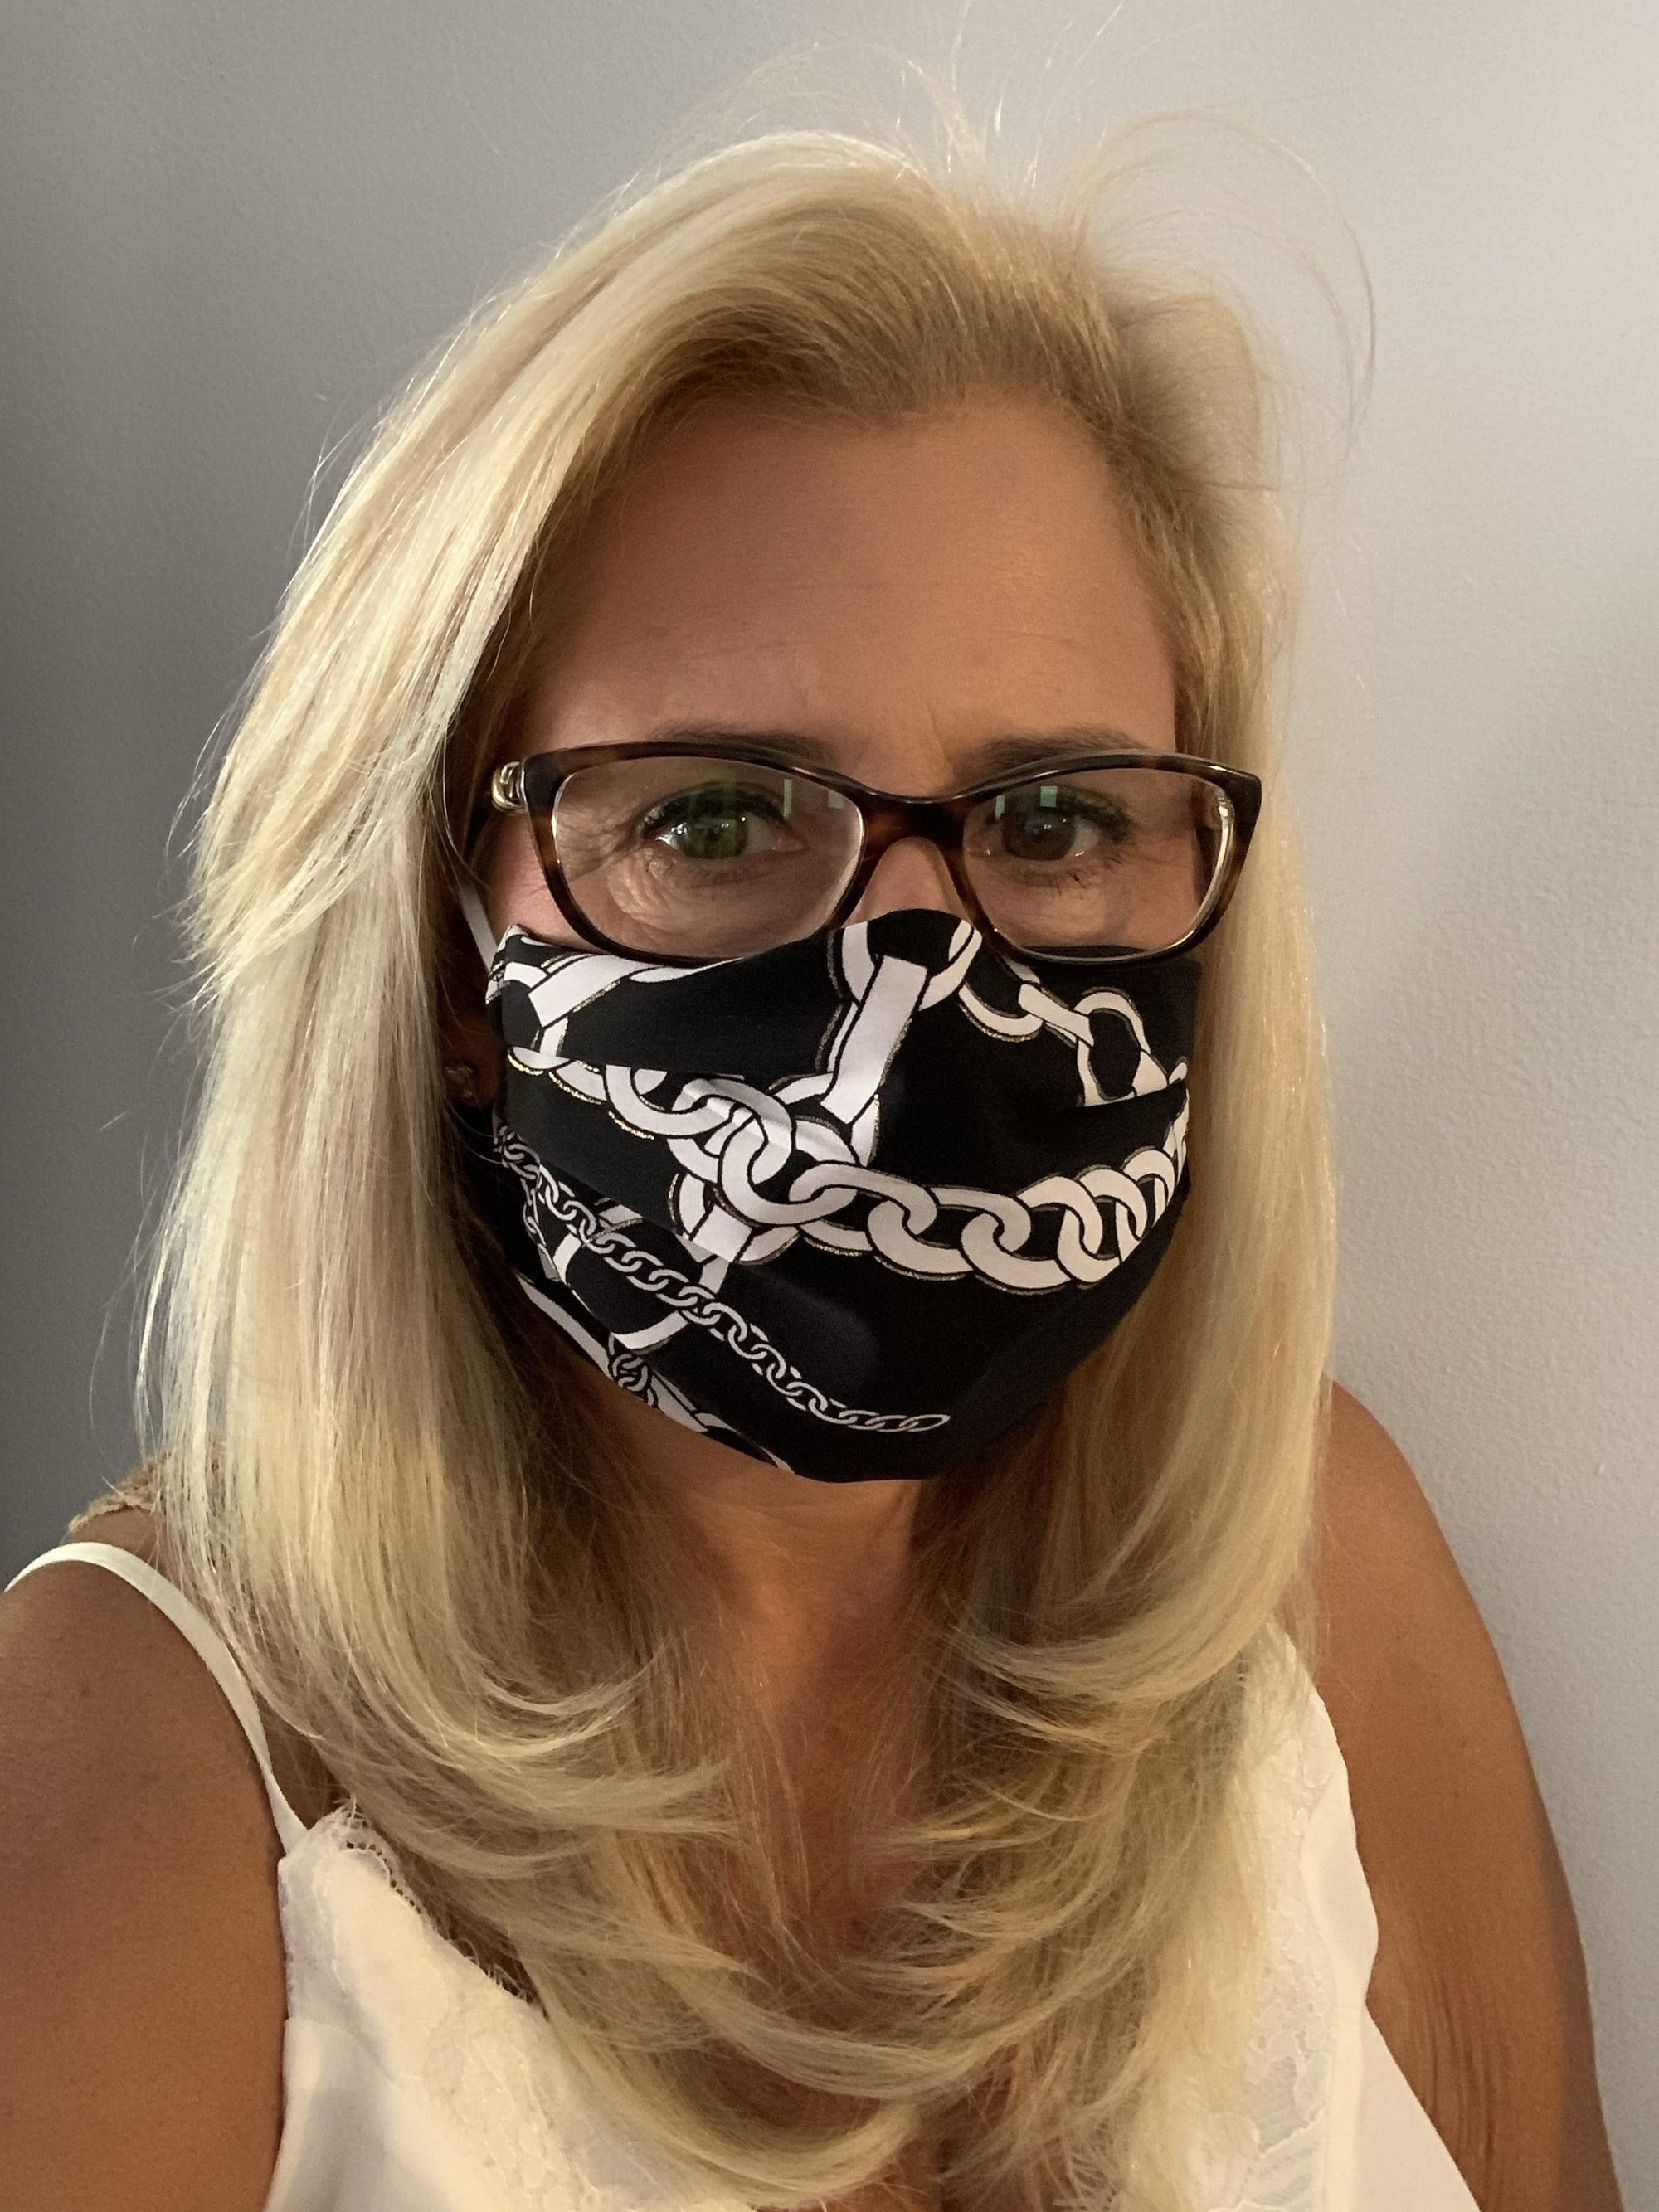 Stacy Bradley Design Face Mask Equestrian Black and White equestrian team apparel online tack store mobile tack store custom farm apparel custom show stable clothing equestrian lifestyle horse show clothing riding clothes horses equestrian tack store